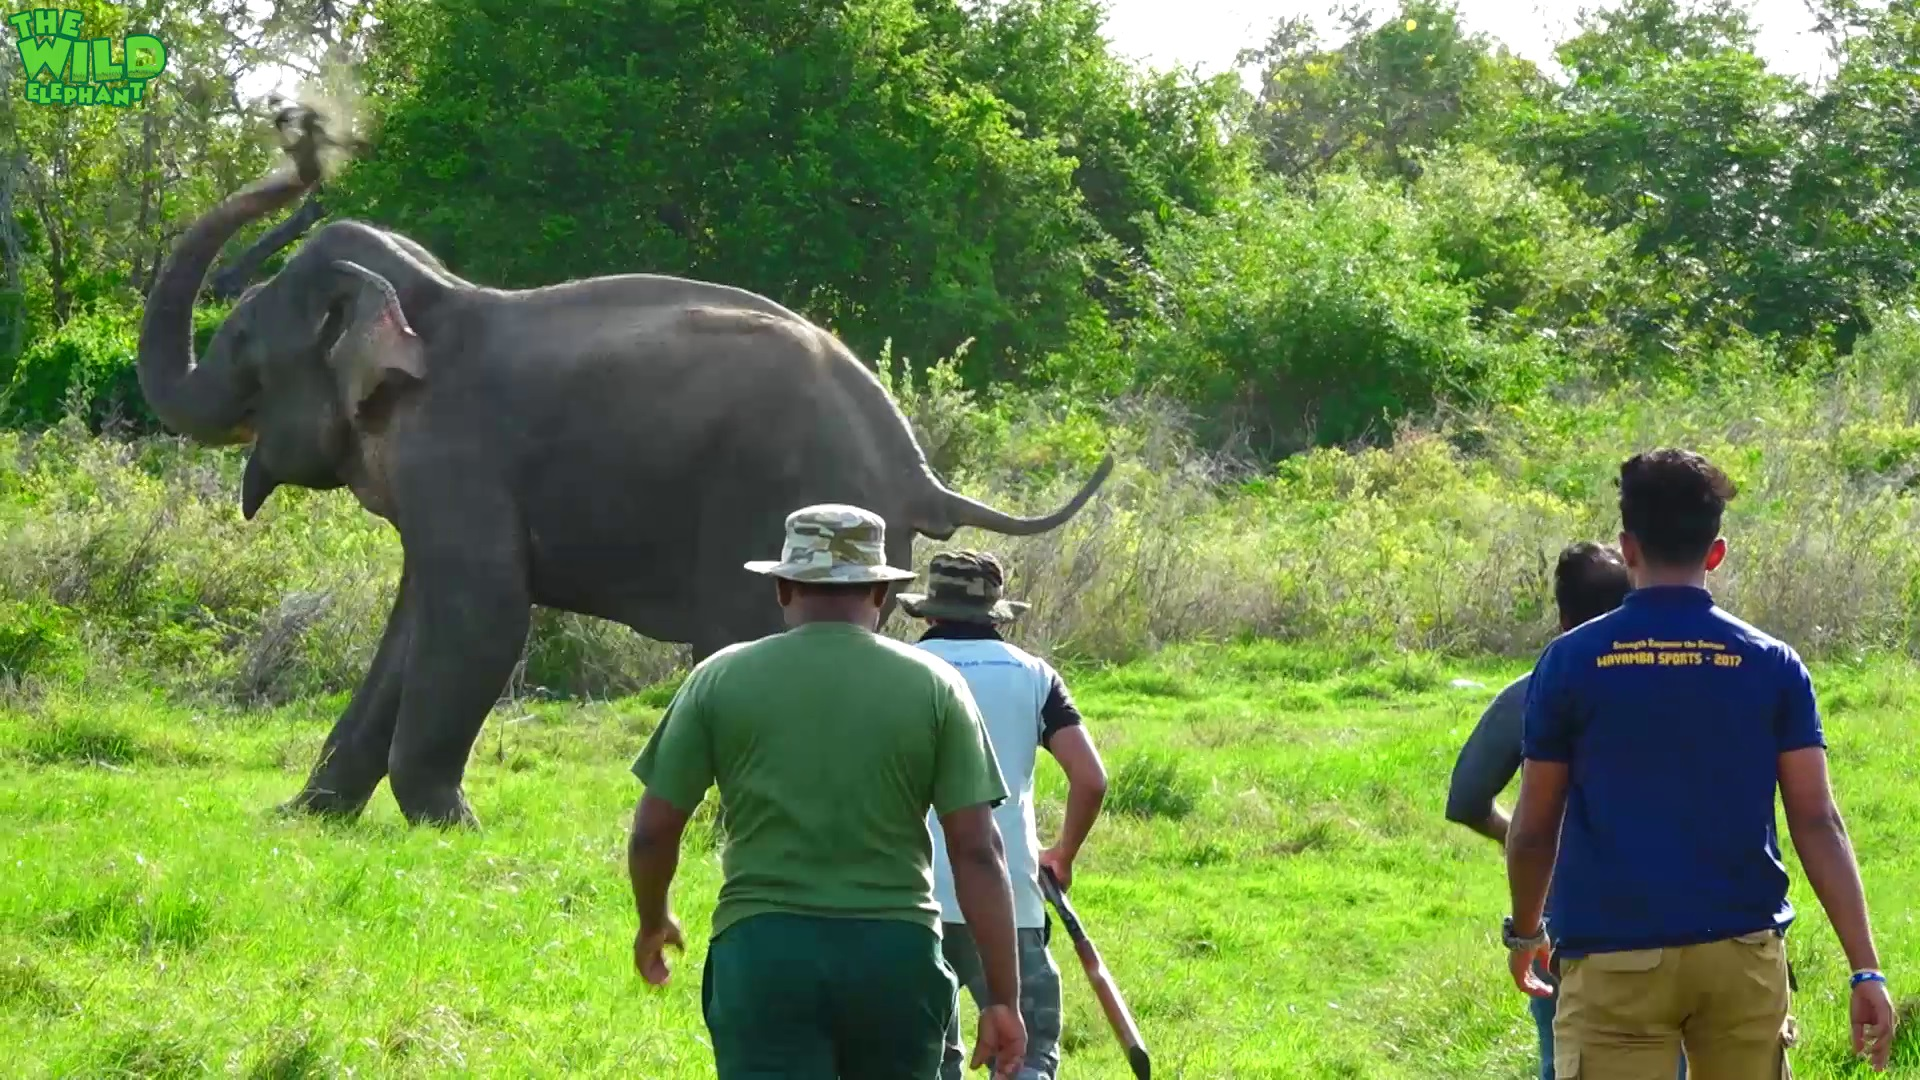 Humanity! Helping an injured Elephant